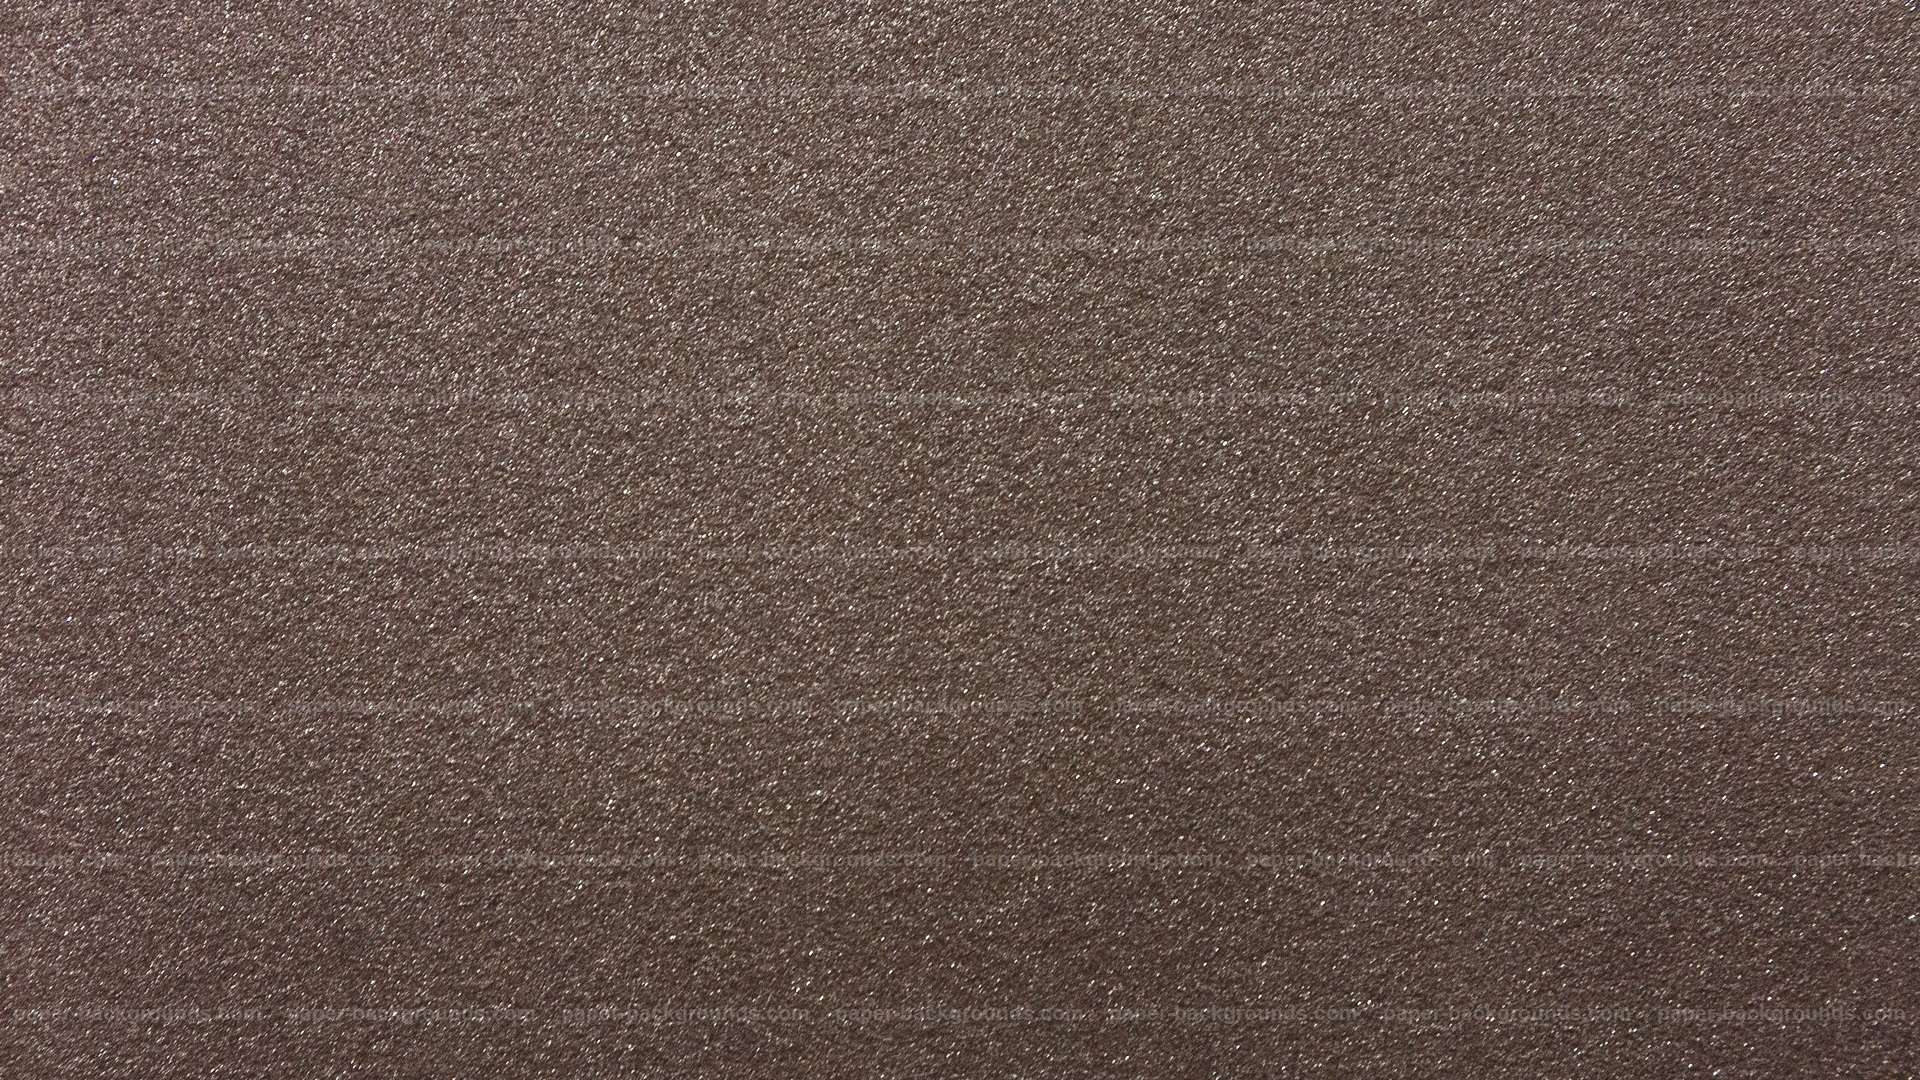 Brown Painted Wall Rough Texture HD